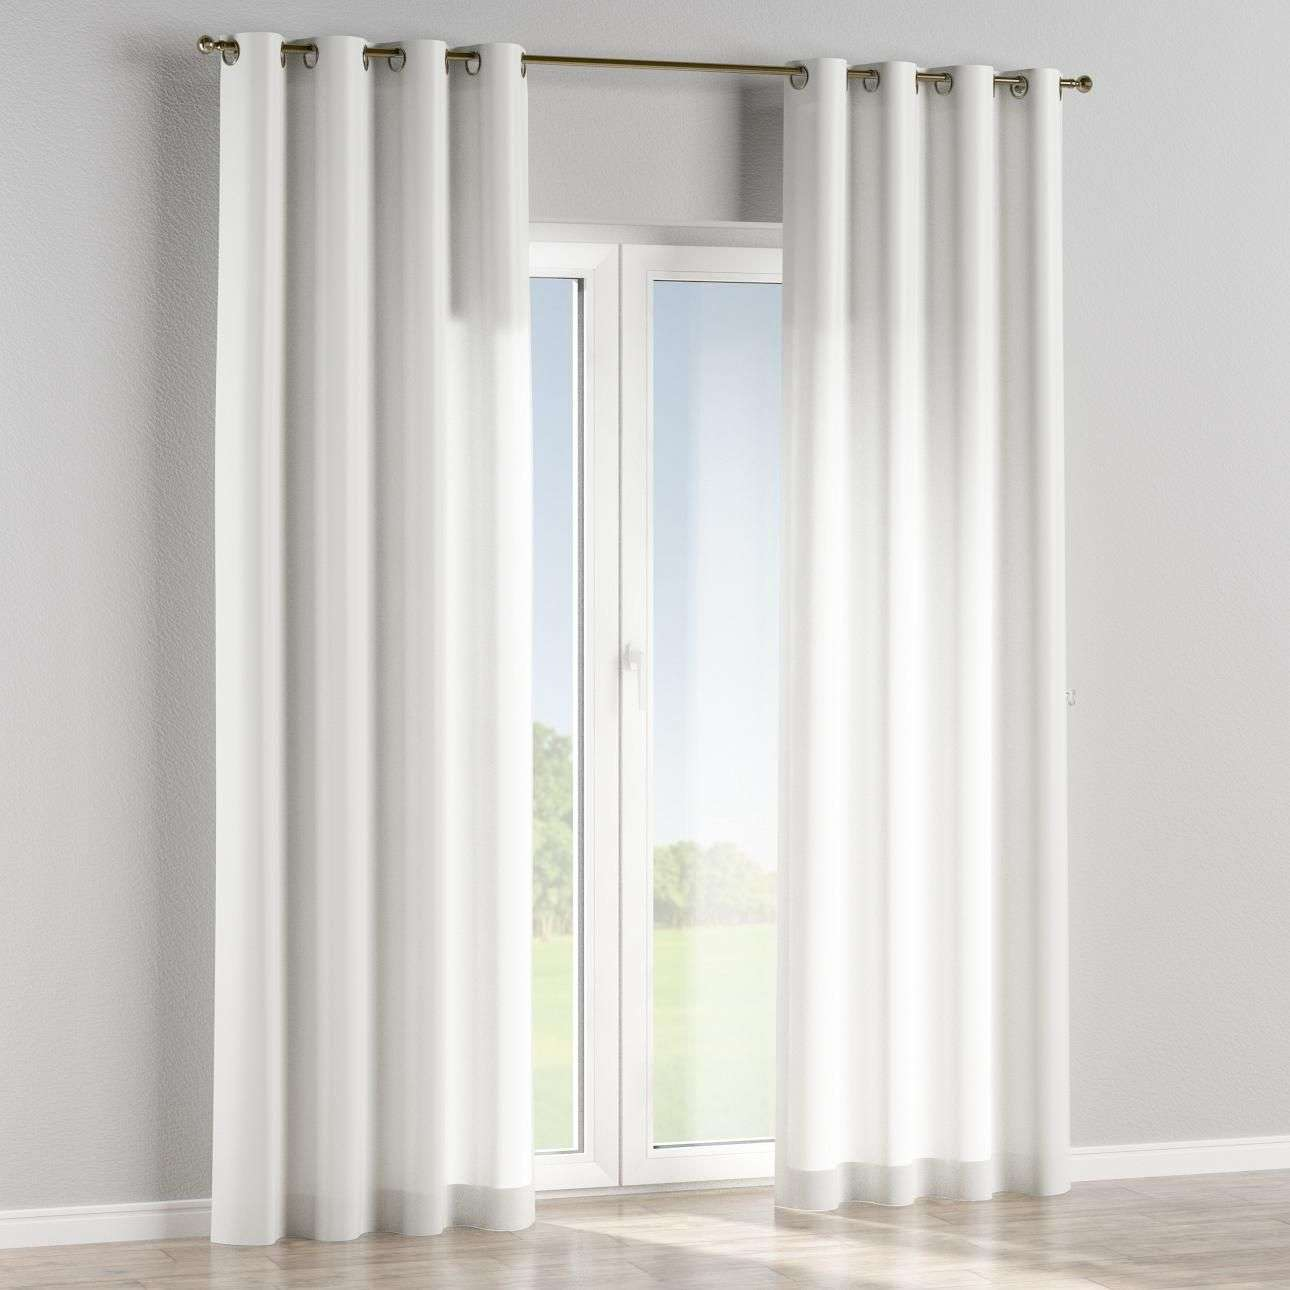 Eyelet curtains in collection Cotton Panama, fabric: 702-05